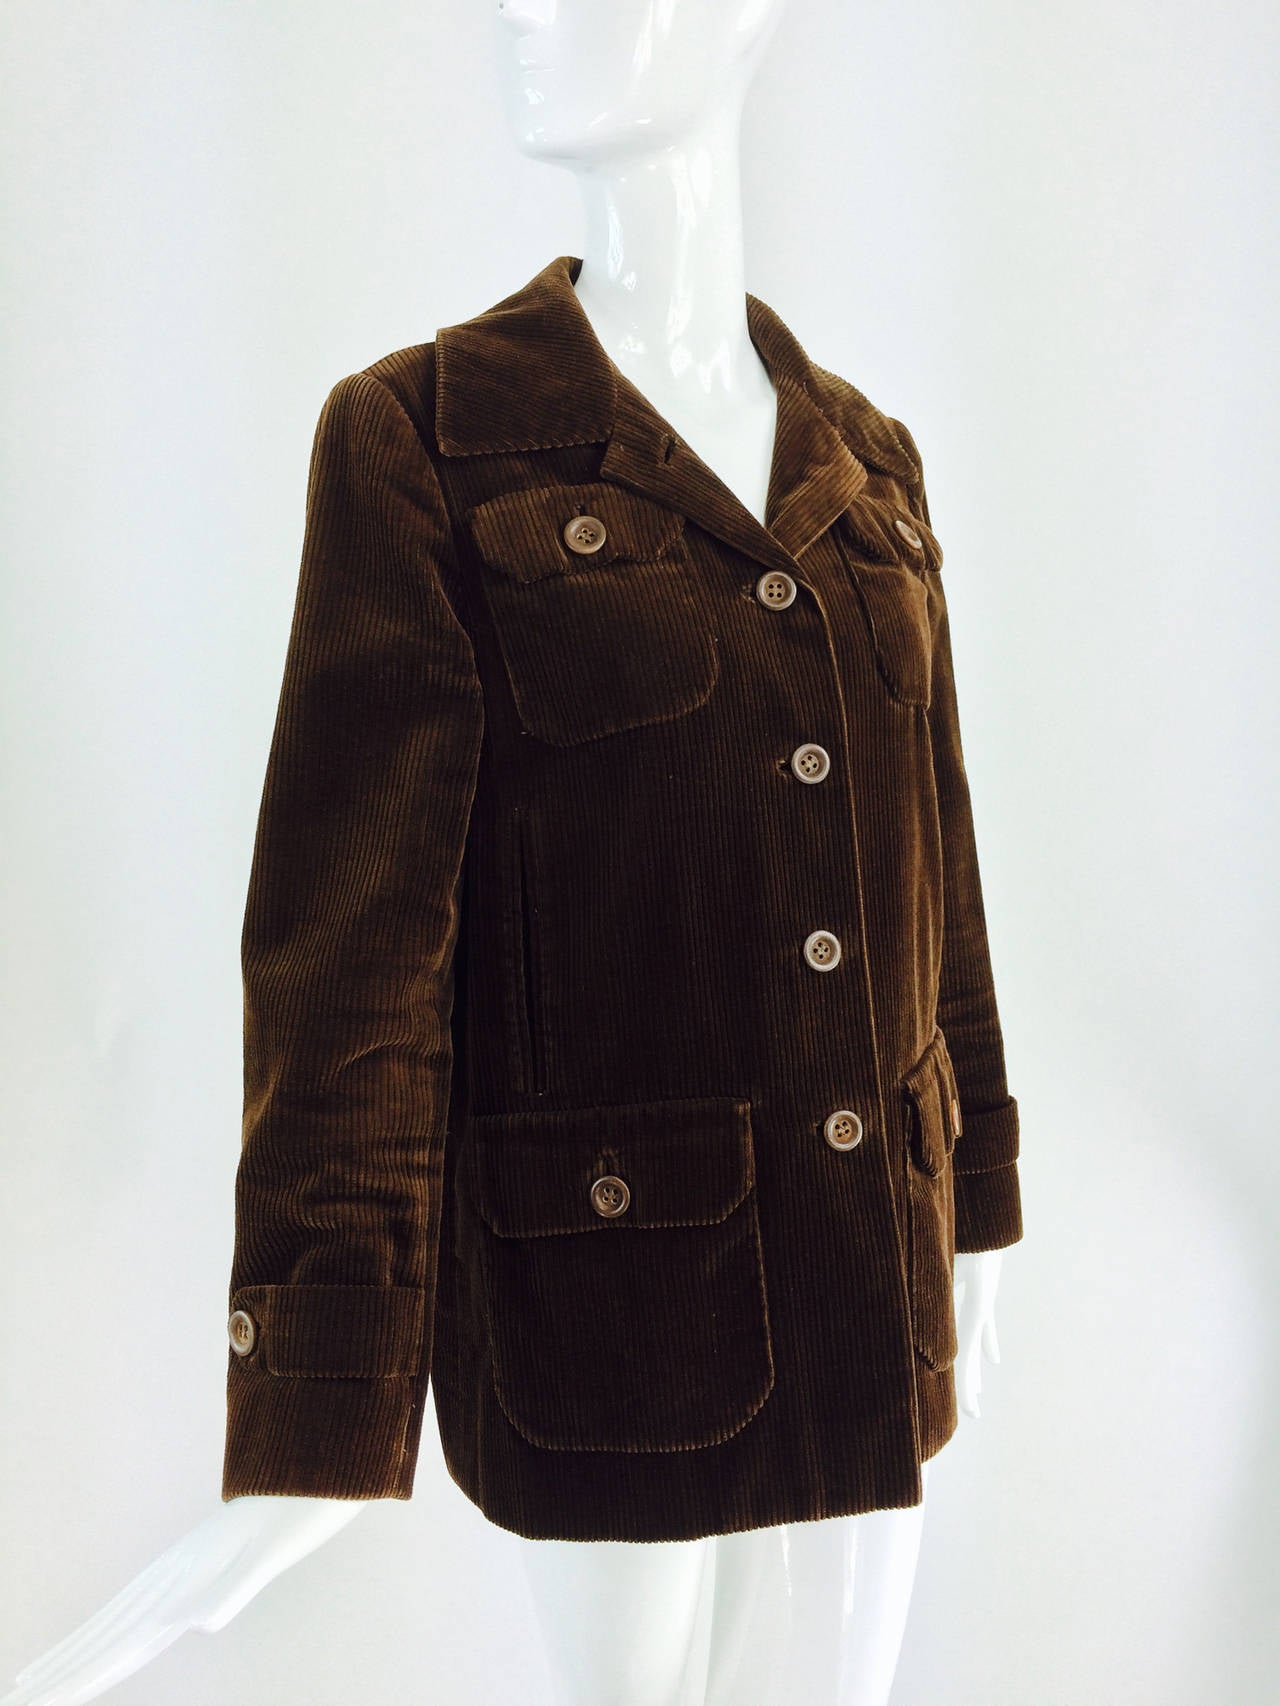 Bill Blass chocolate brown corduroy jacket early 1970s...Soft chocolate brown corduroy jacket has four flap patch pockets and vertical hand warmer pockets at the front sides...Single breasted jacket closes at the front with wooden buttons...Long